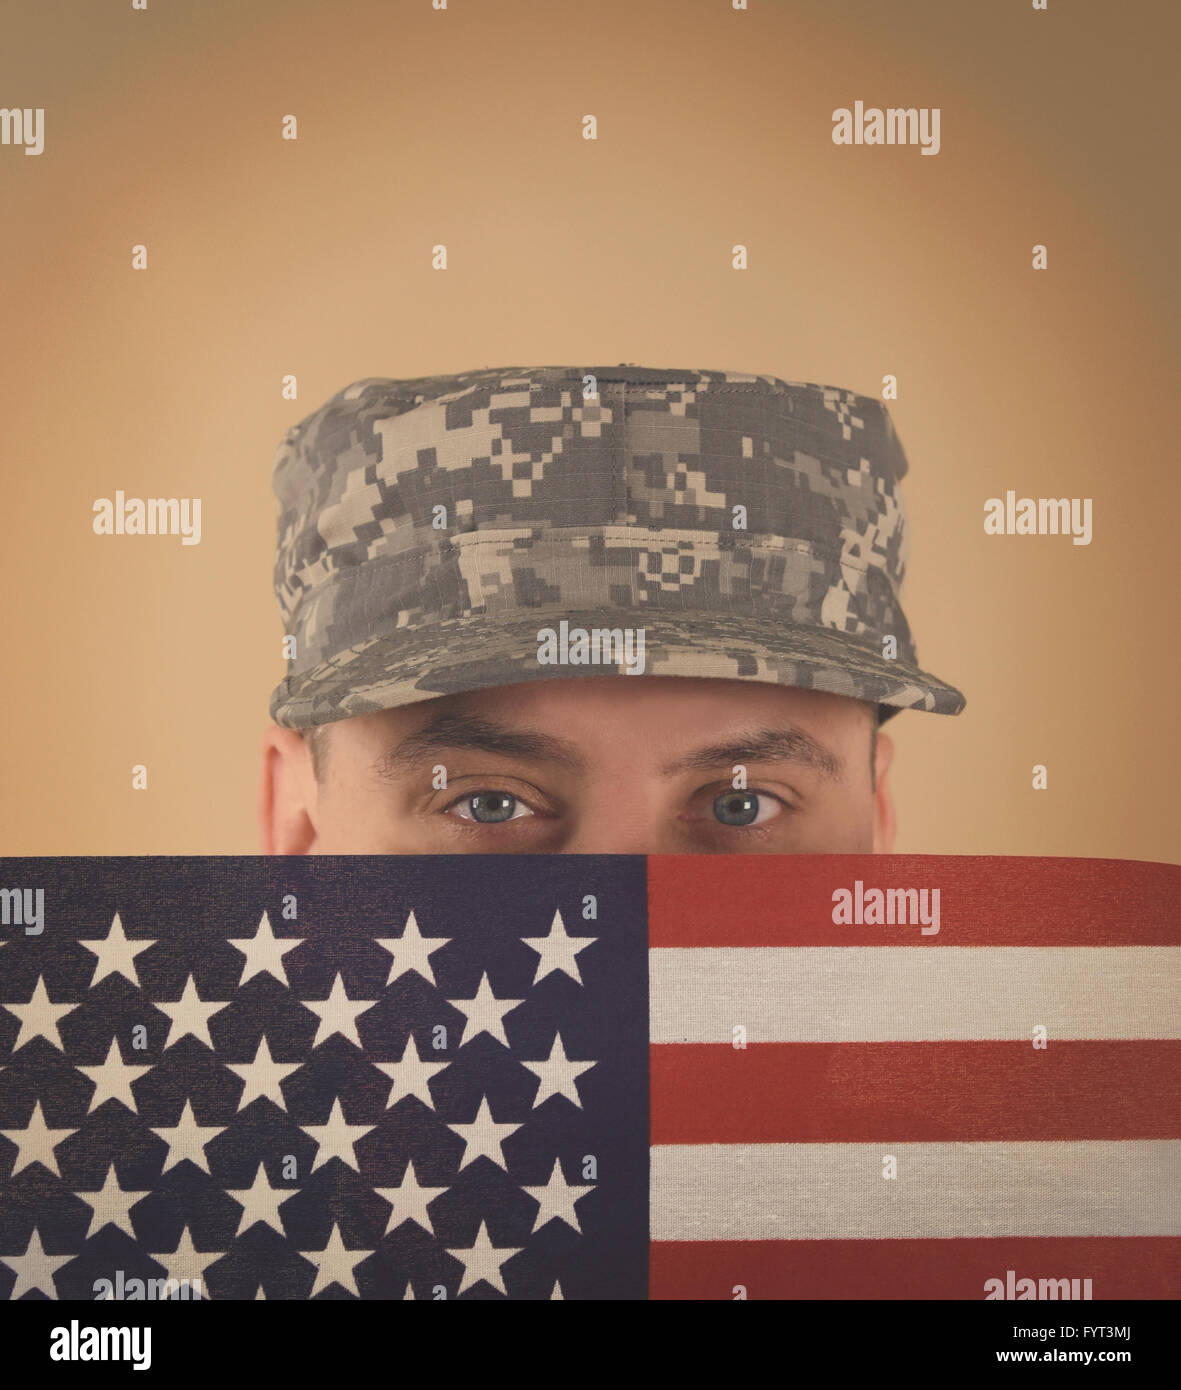 A military army soldier is holding an American flag up to his face with a uniform on and copyspace for a veteran, - Stock Image